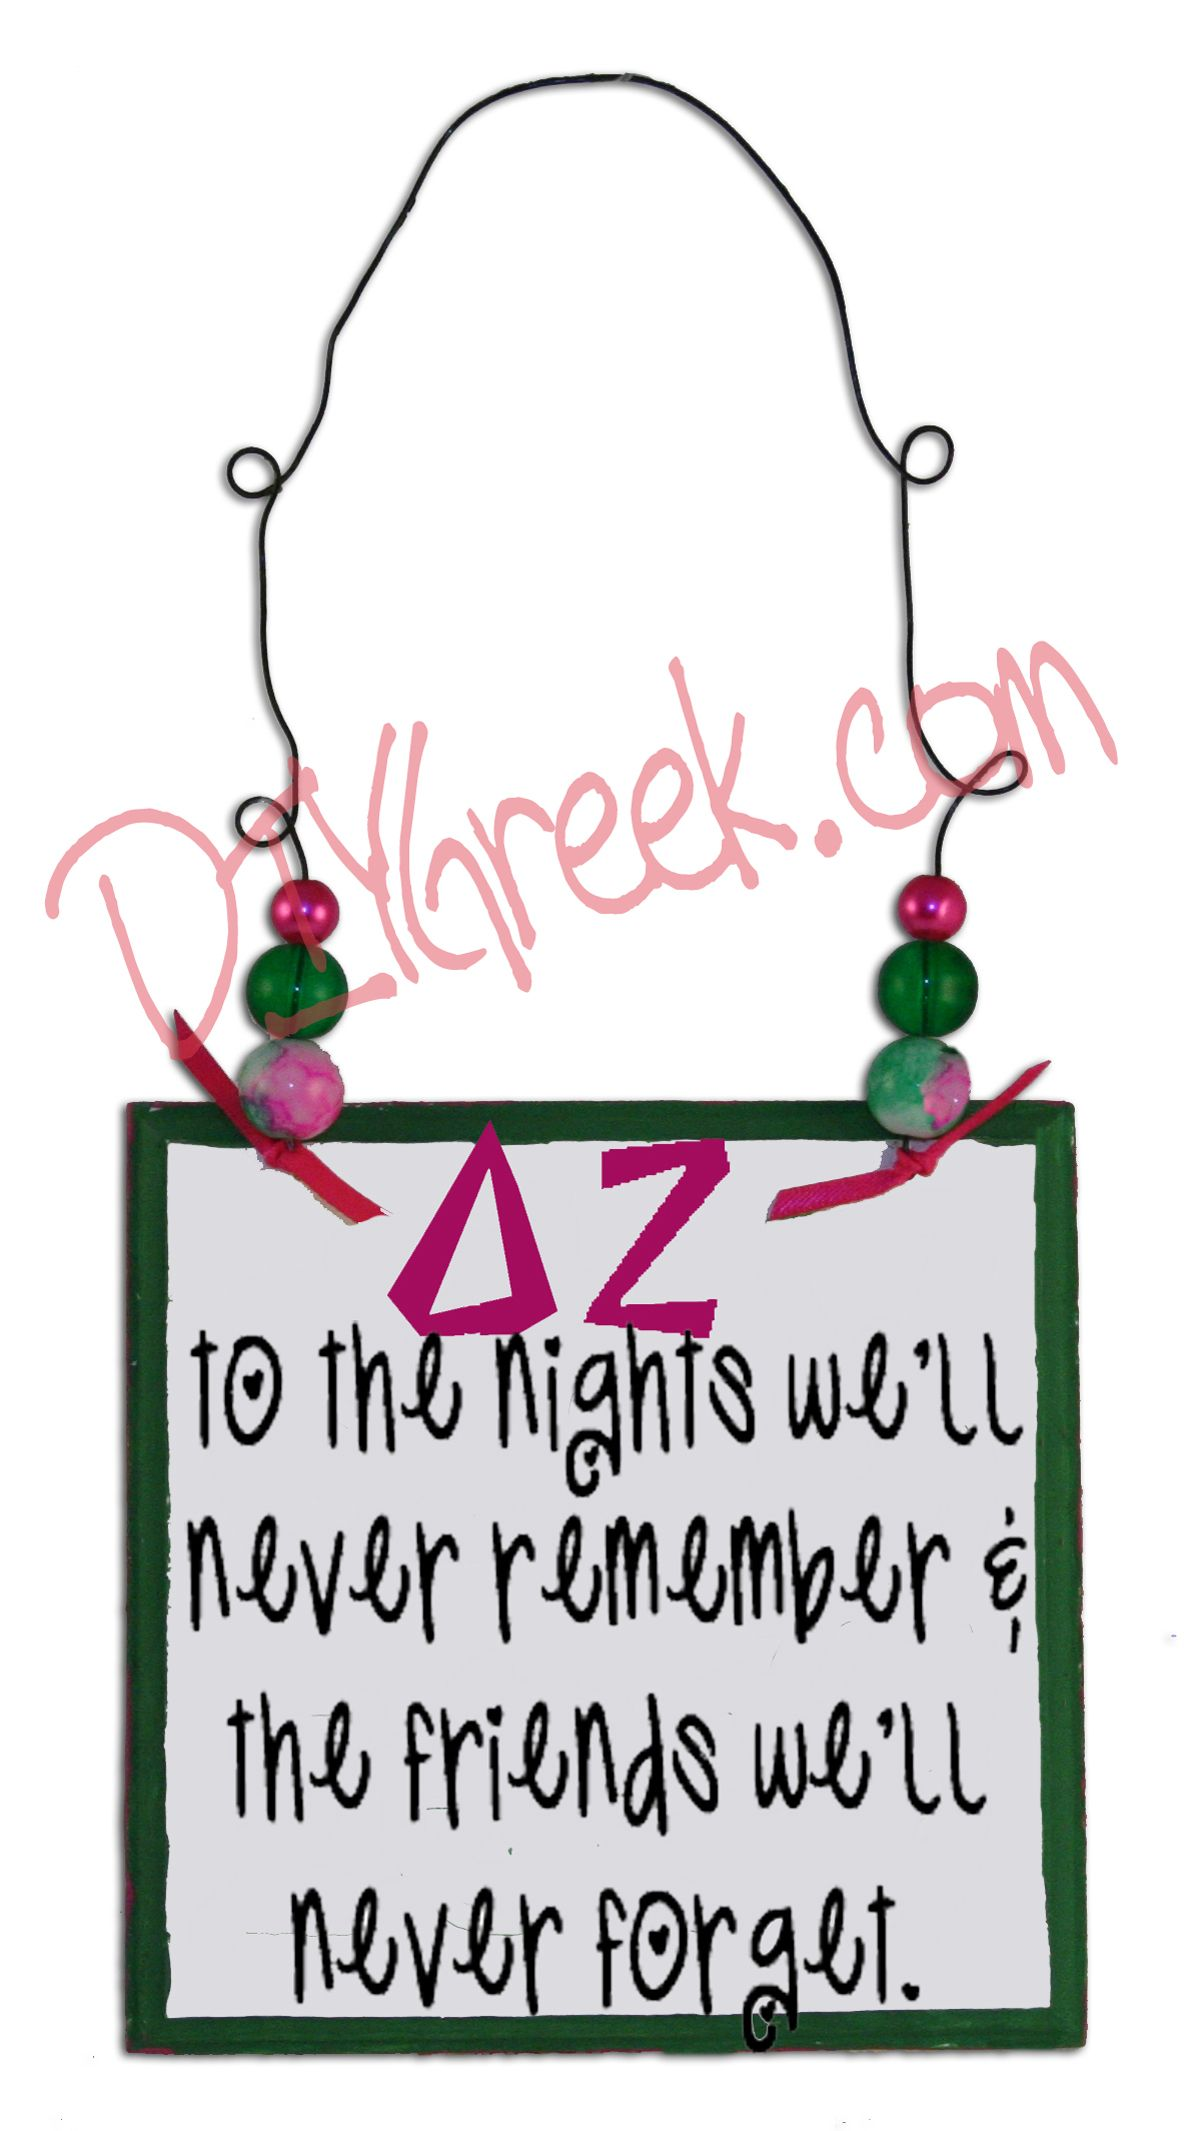 Dz delta zeta door handle to the nights weull never remember and the